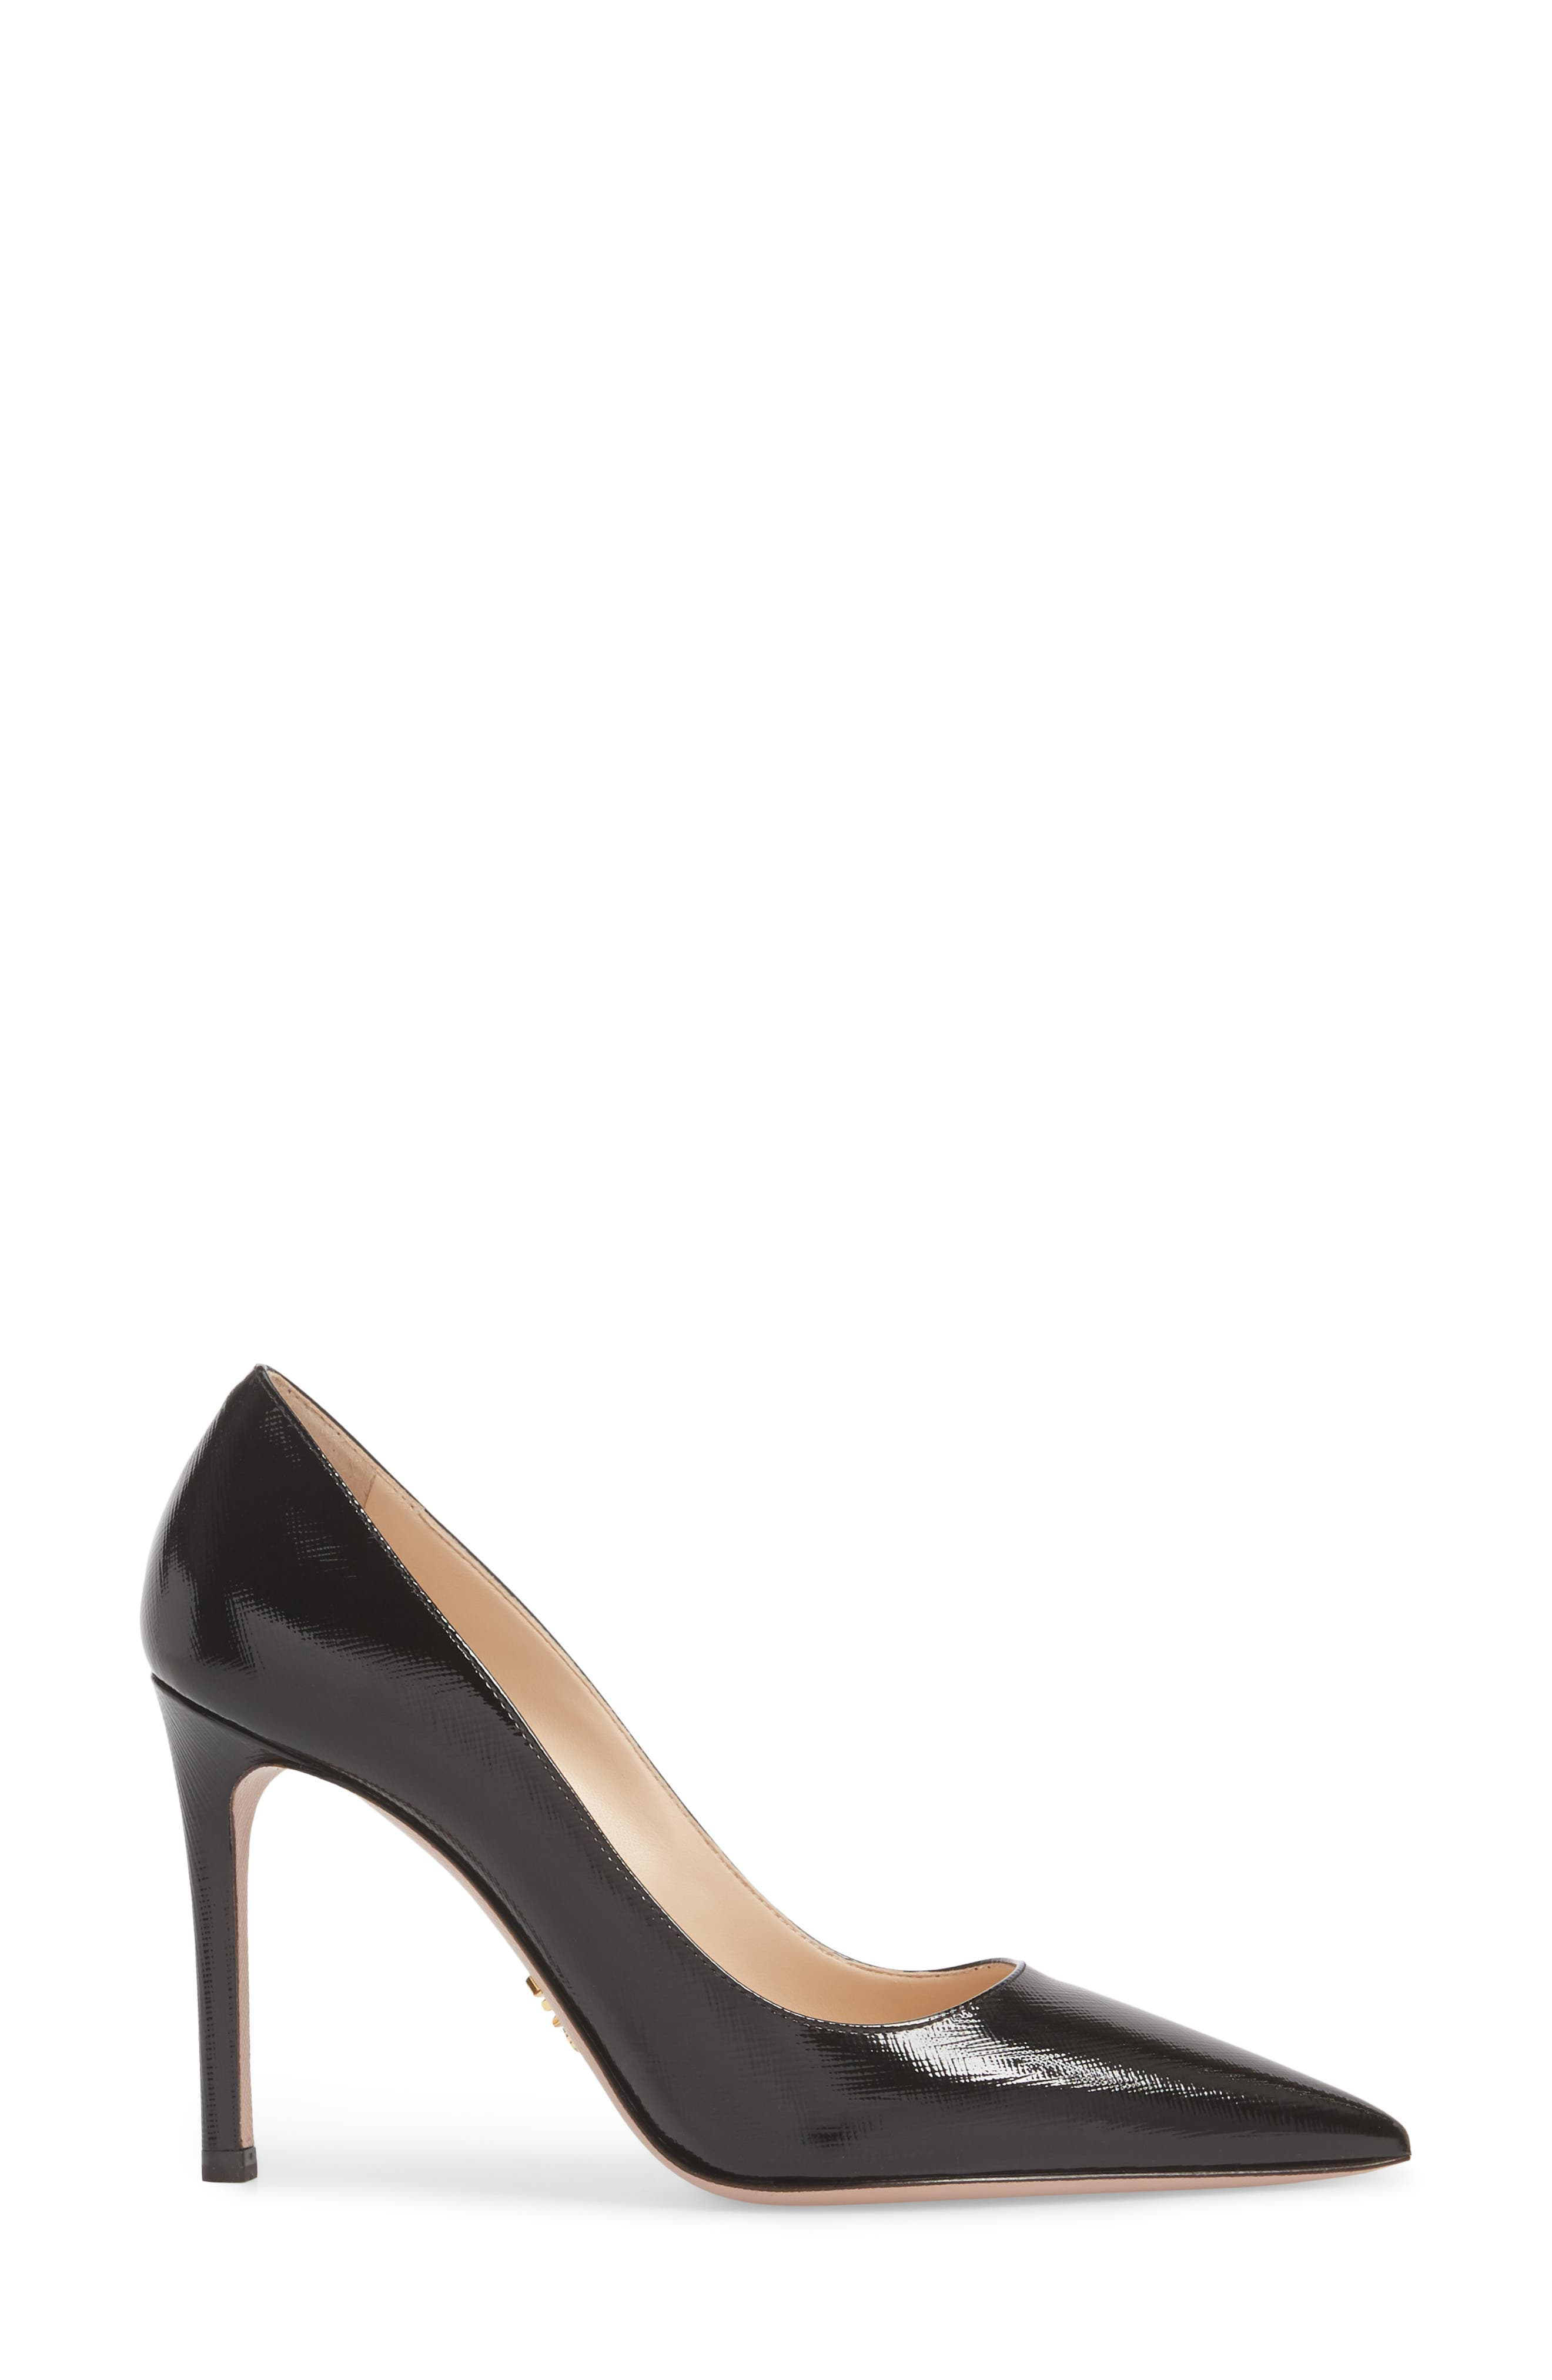 PRADA, Pointy Toe Pump, Alternate thumbnail 3, color, BLACK